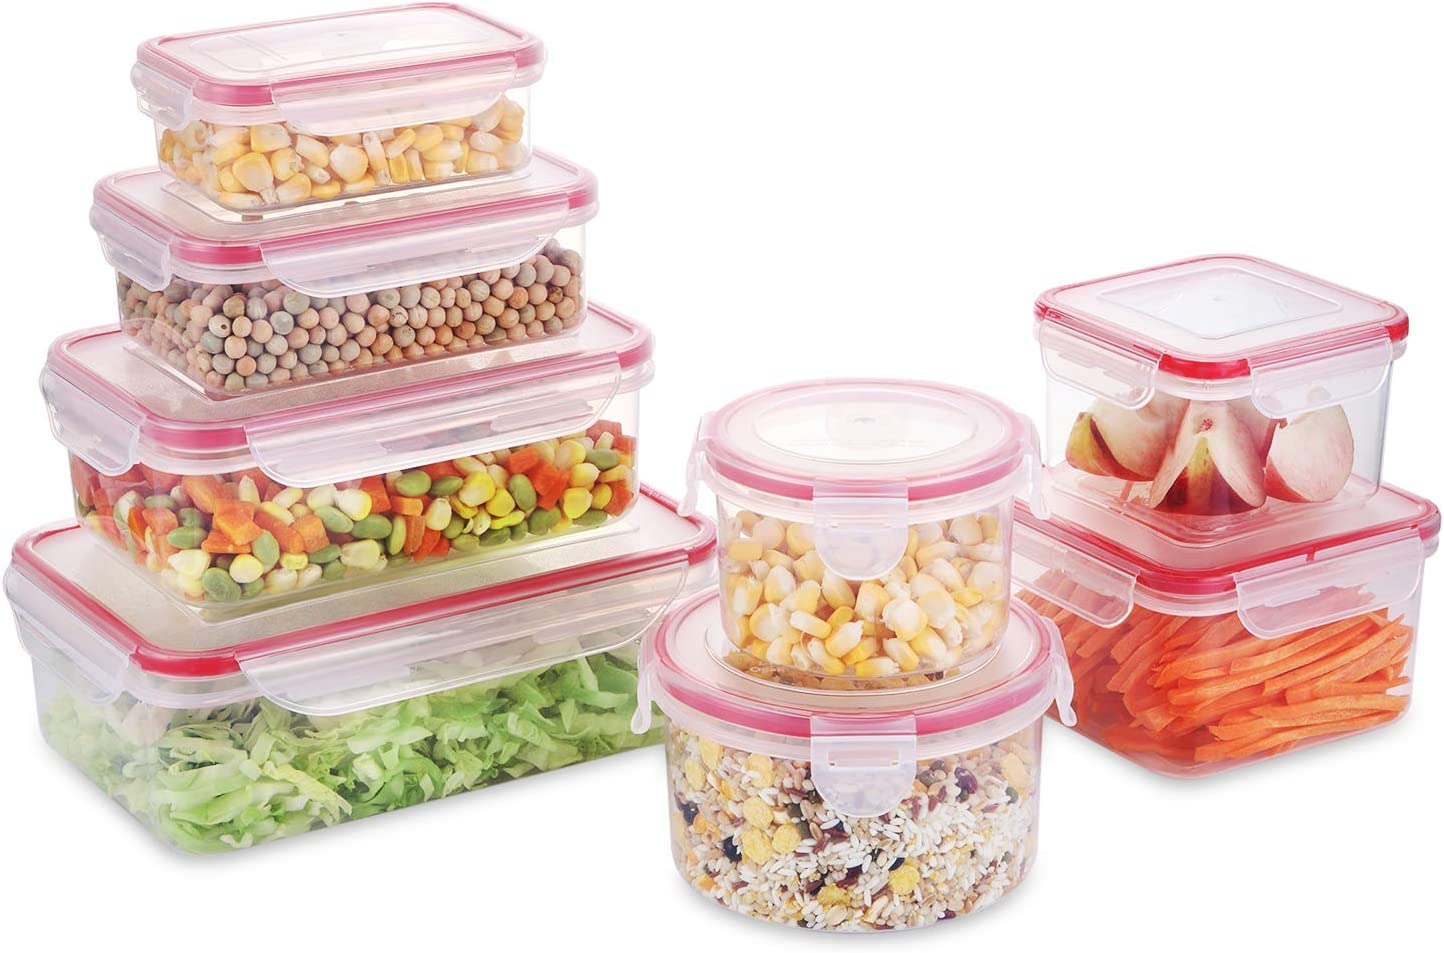 Fresh Friend Food Storage Containers with Lids BPA Free, Plastic Airtight Meal Prep Containers for Lunch, Stackable Kitchen Storage Containers for Food, Set of 8